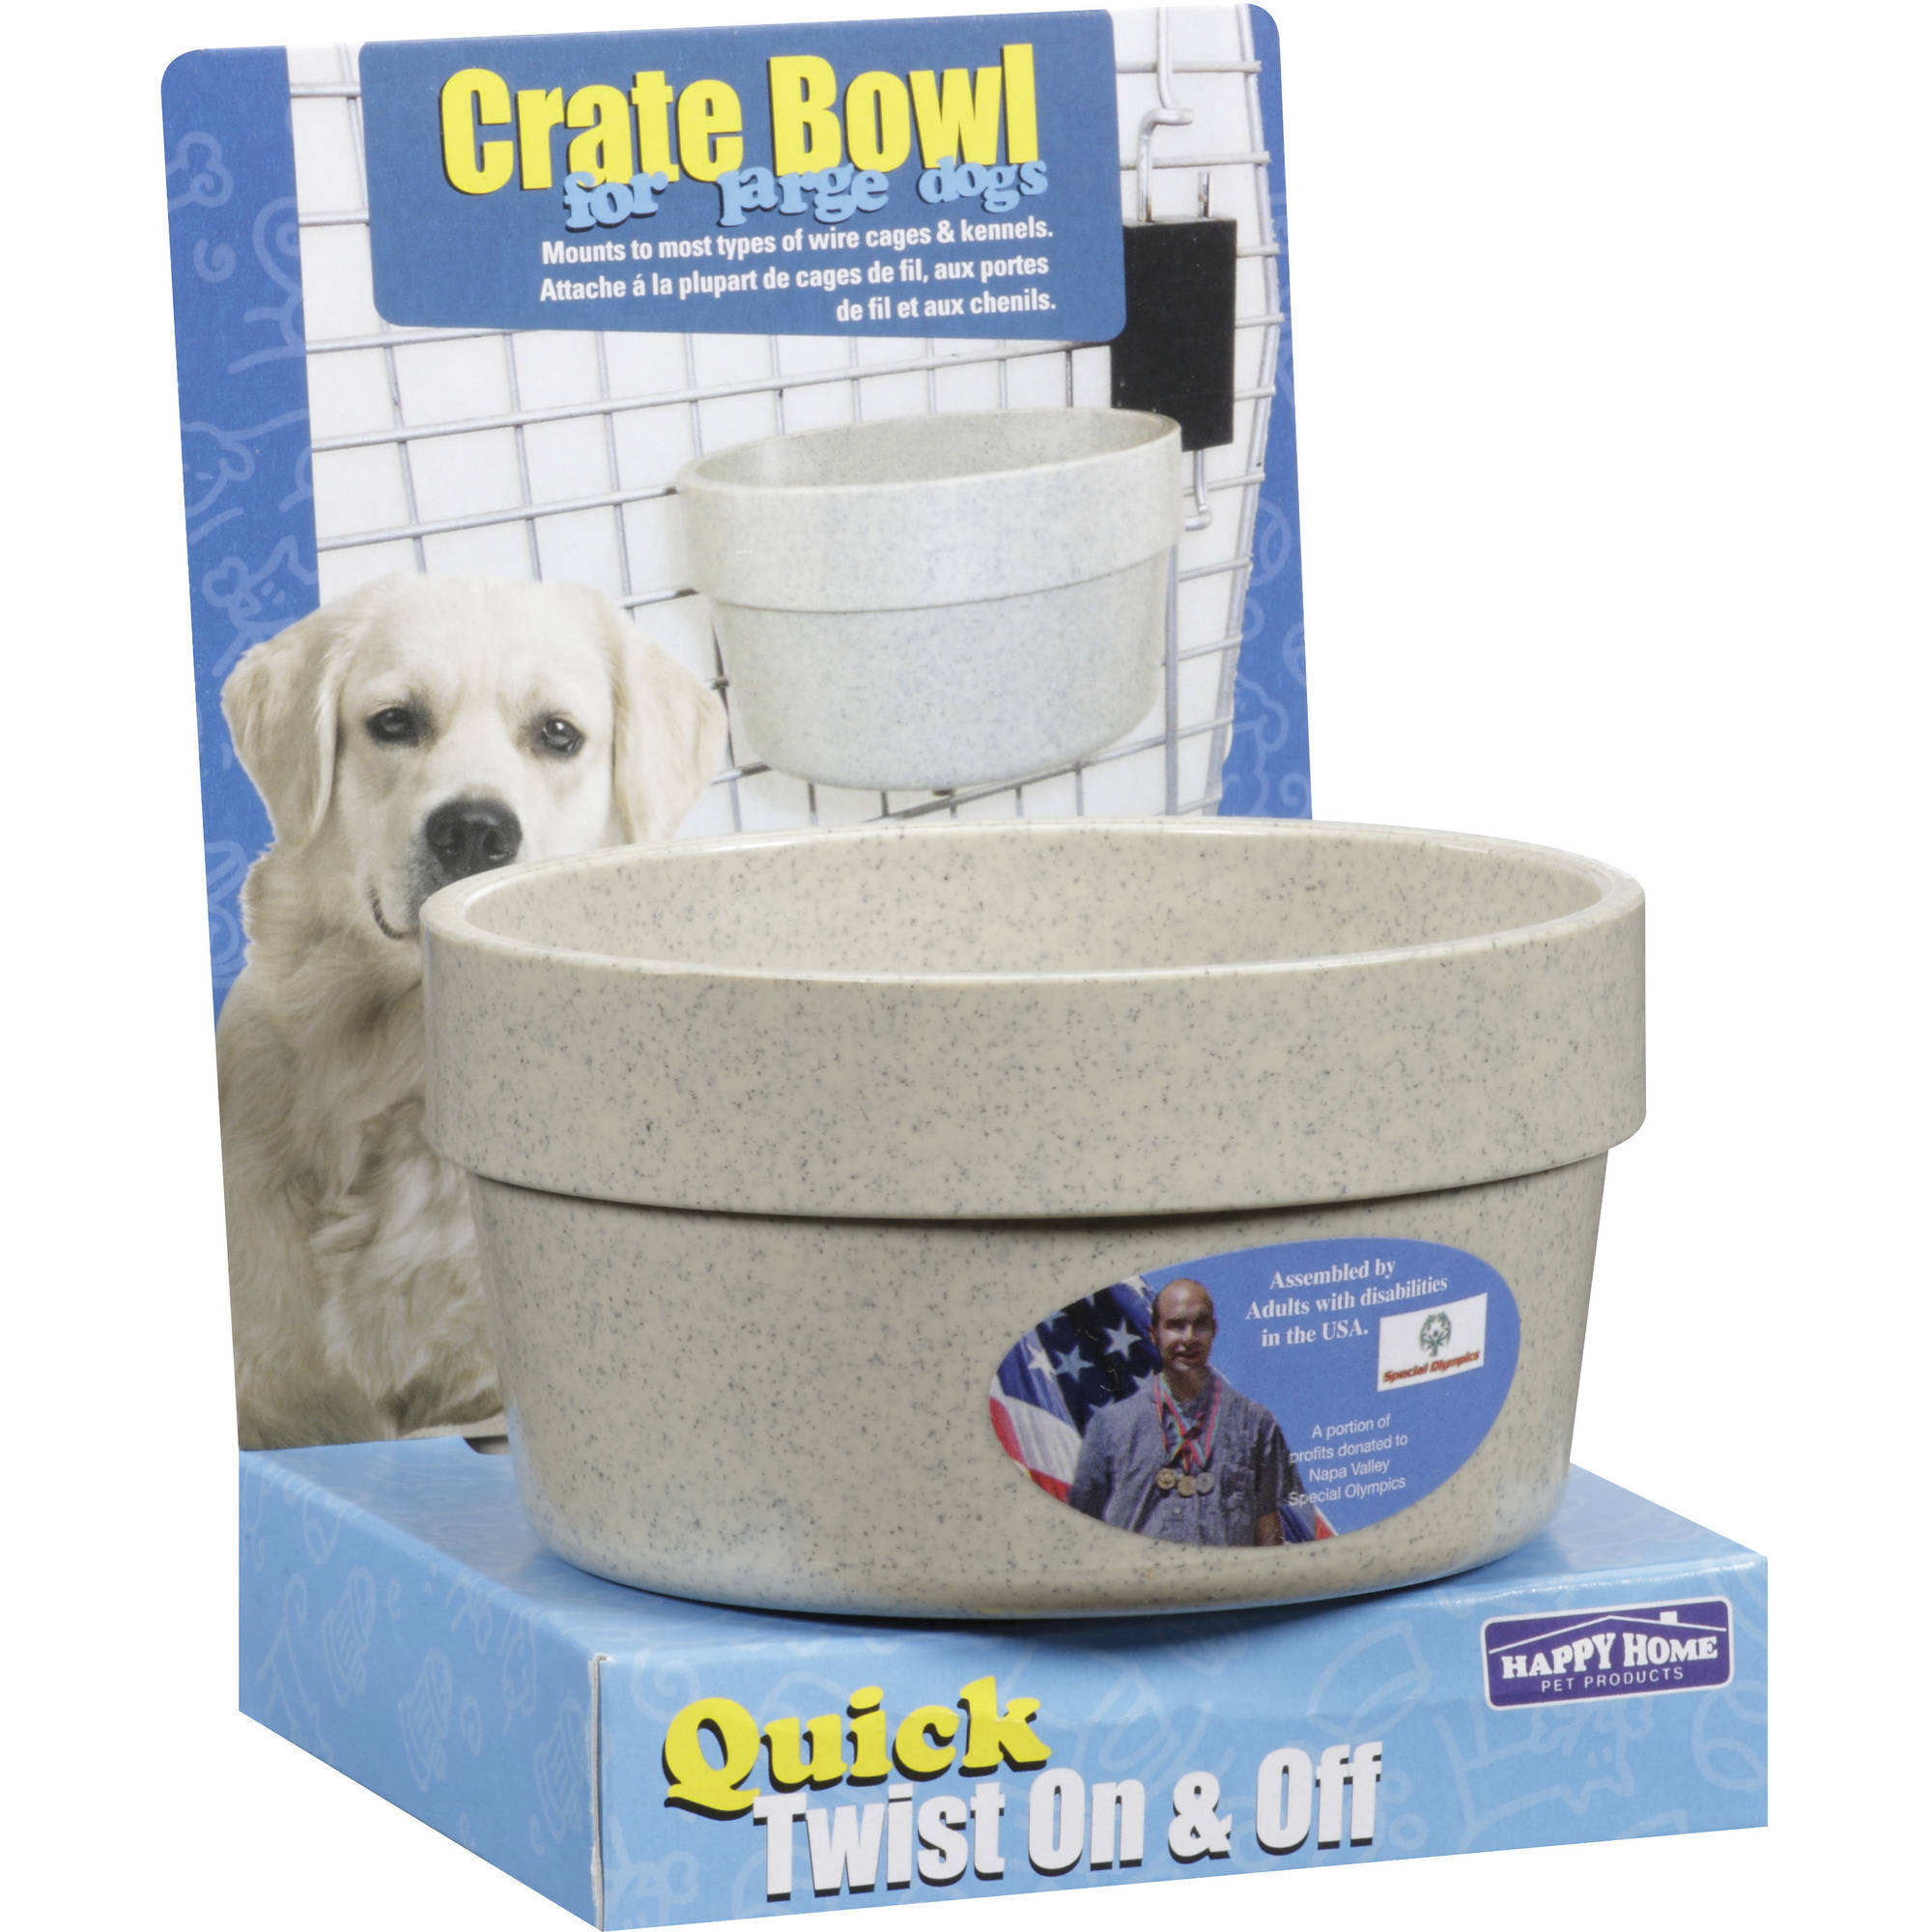 Happy Home Pet Products Dog Crate Bowl For Large Dogs, 1ct